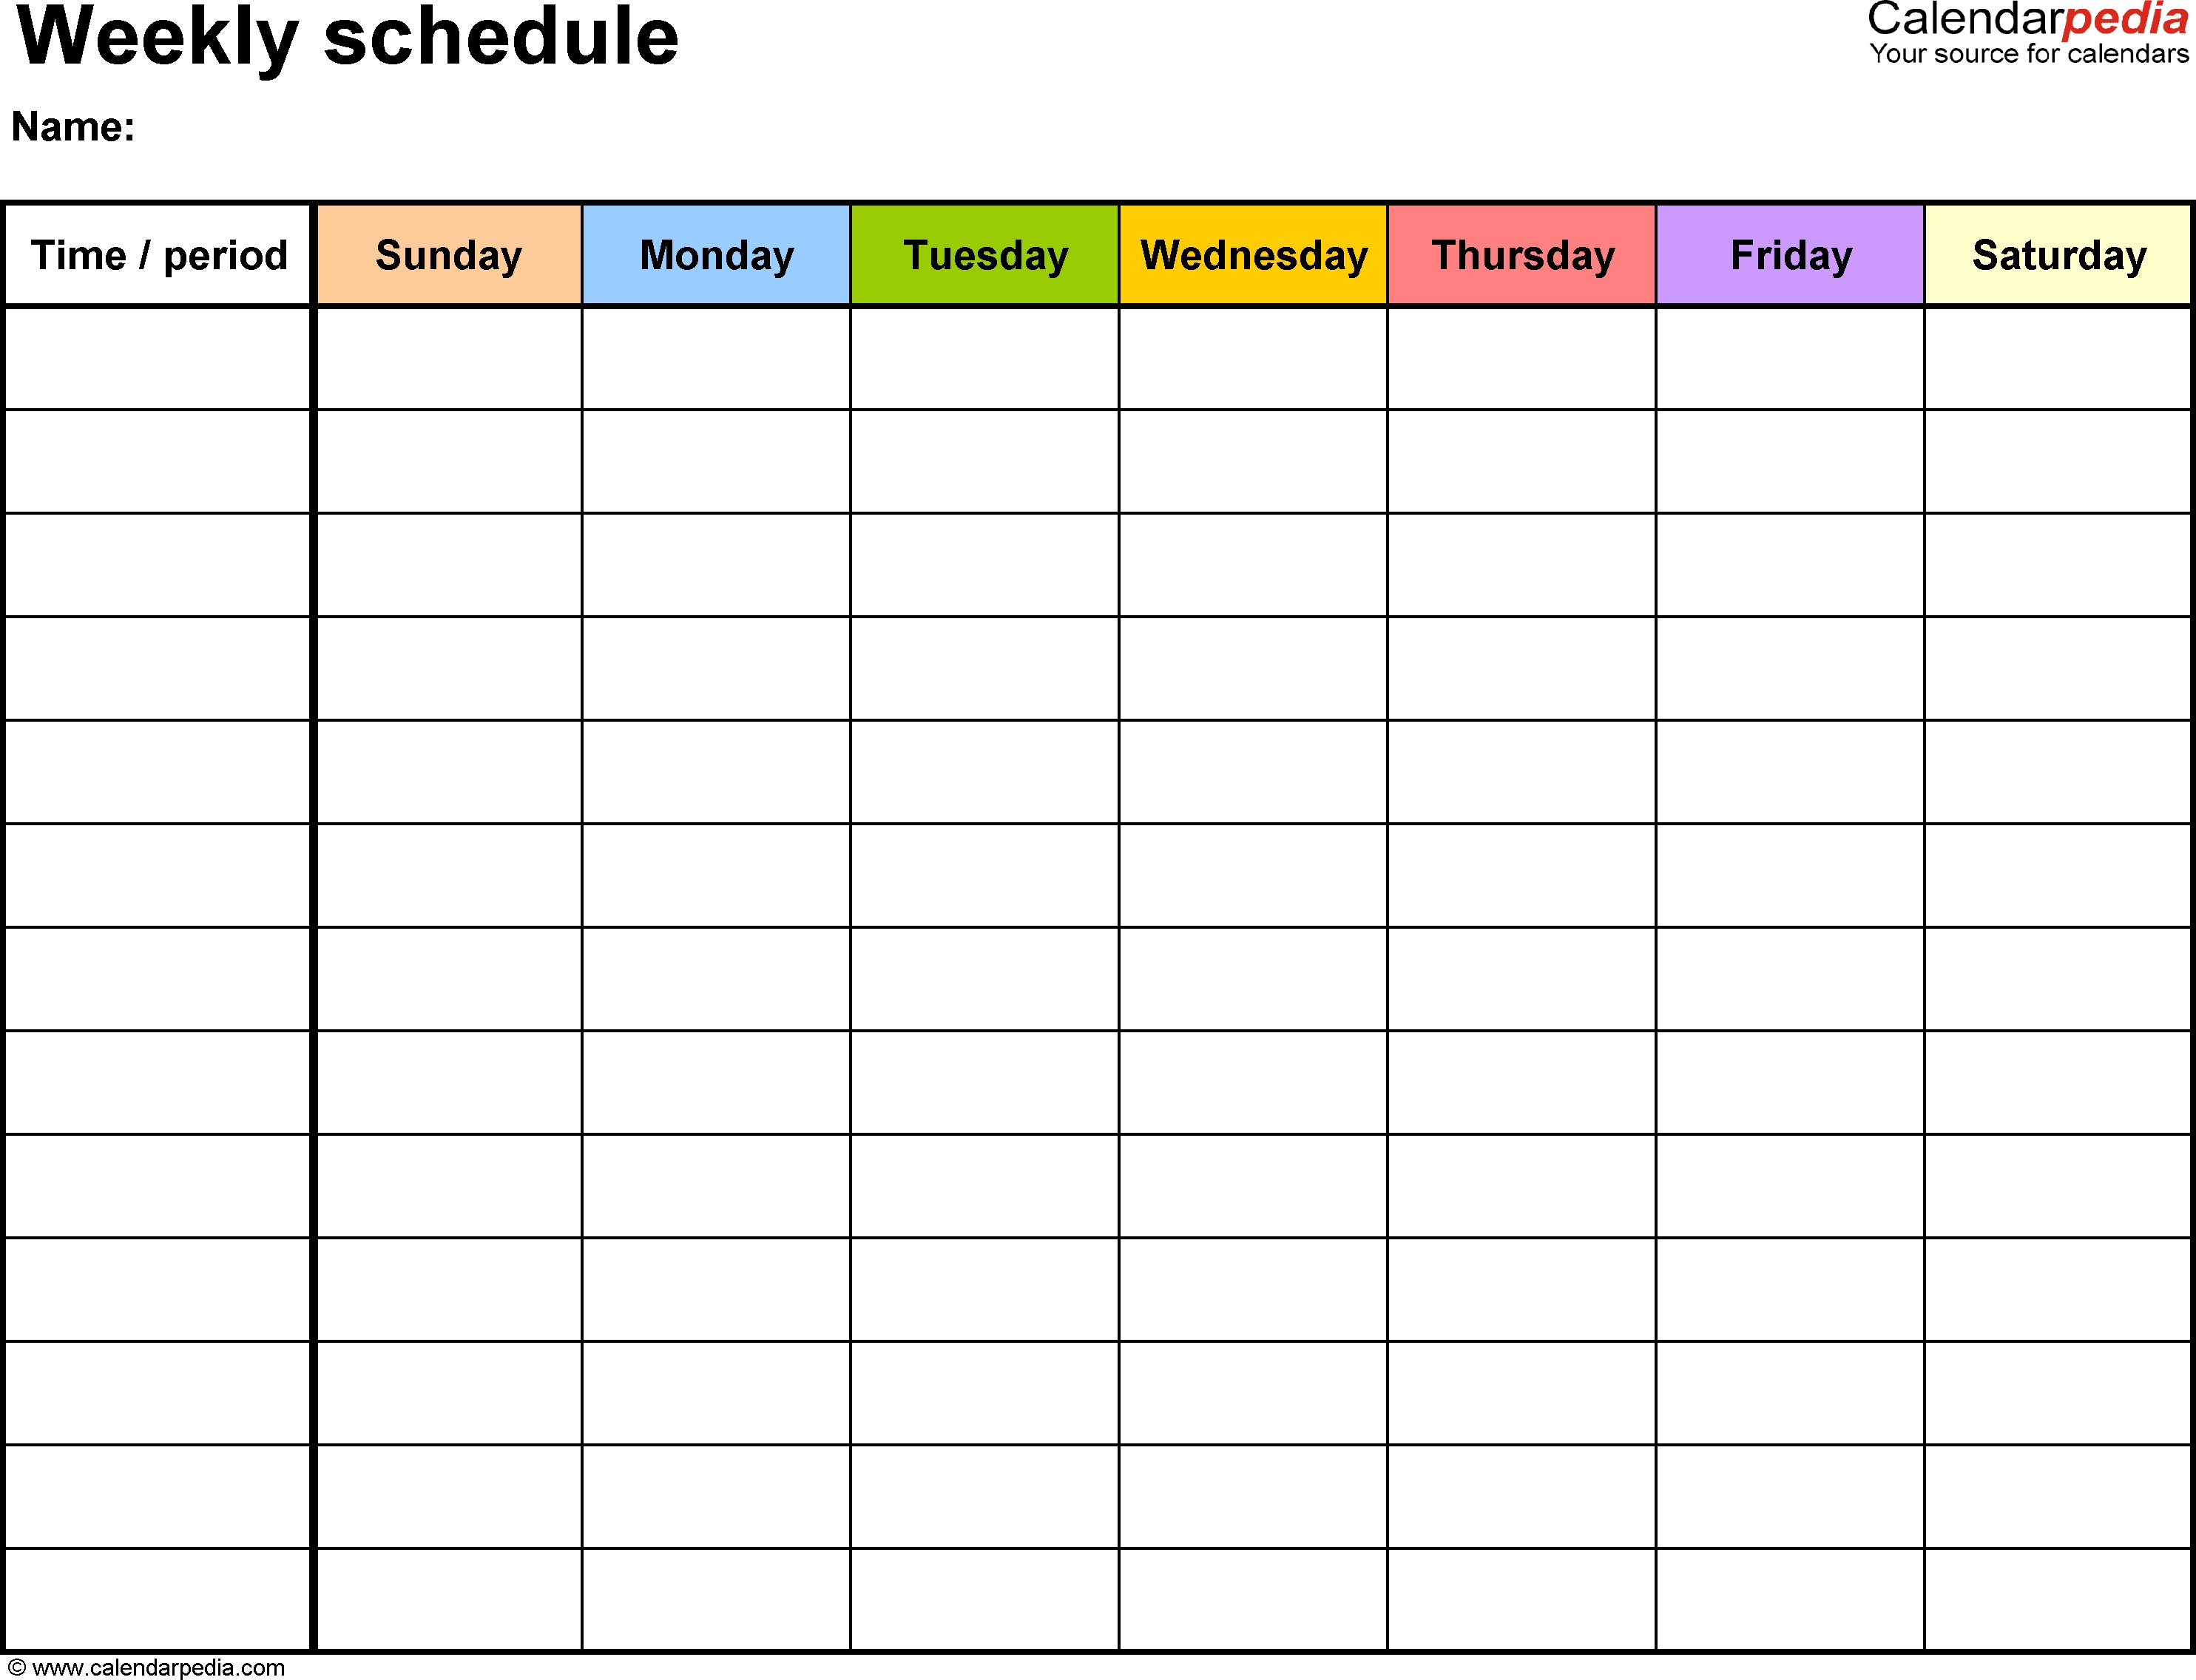 Free Weekly Schedule Templates For Pdf - 18 Templates-Calendar Template Fillable Pdf